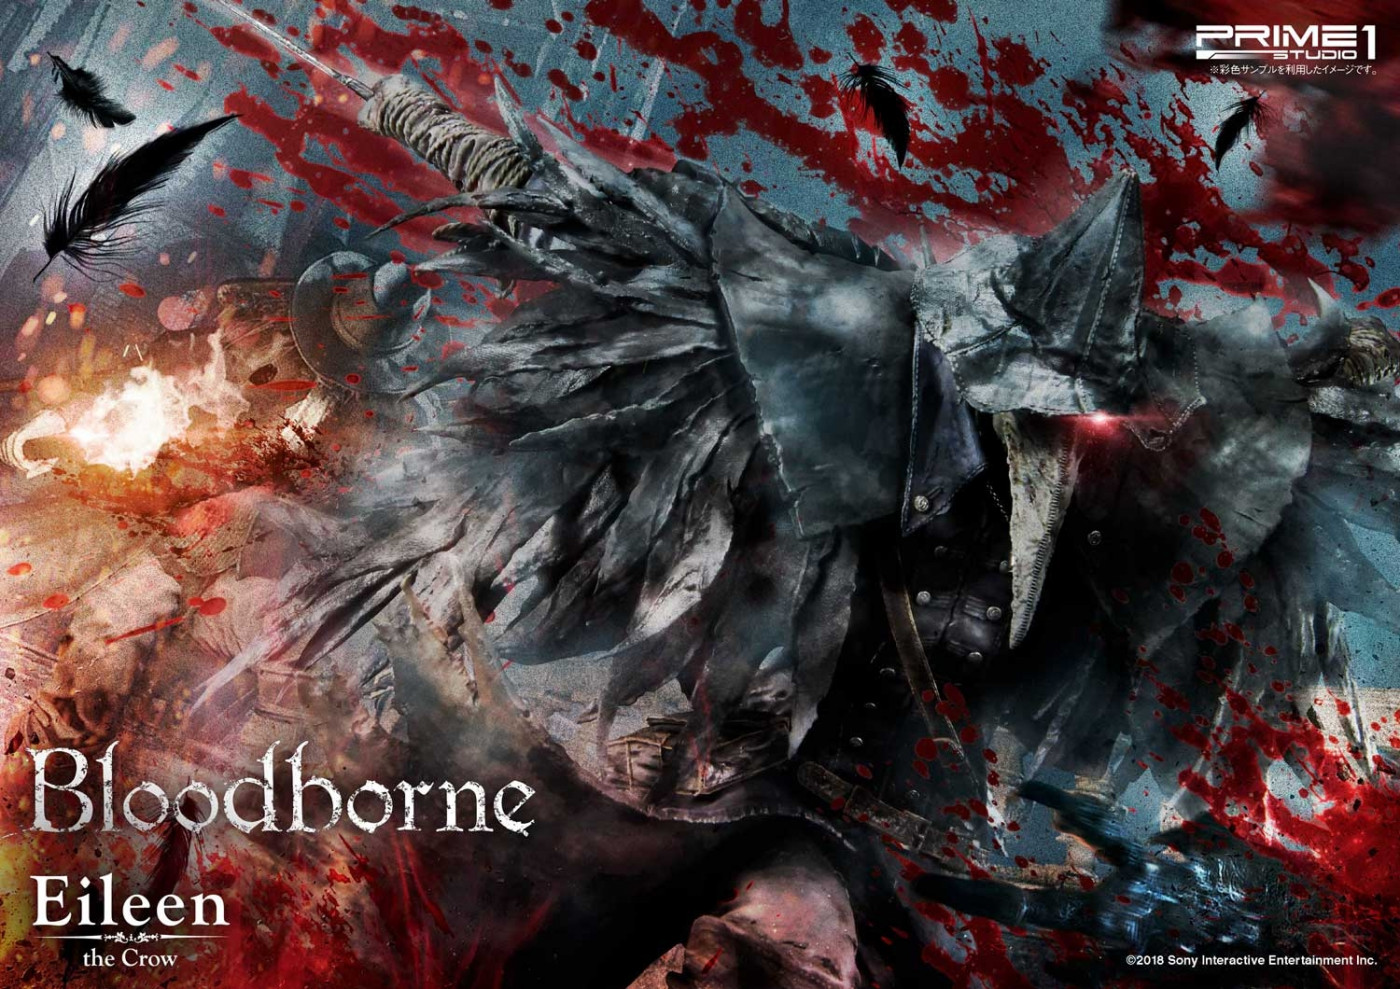 Ultimate Premium Masterline Bloodborne Eileen the Crow